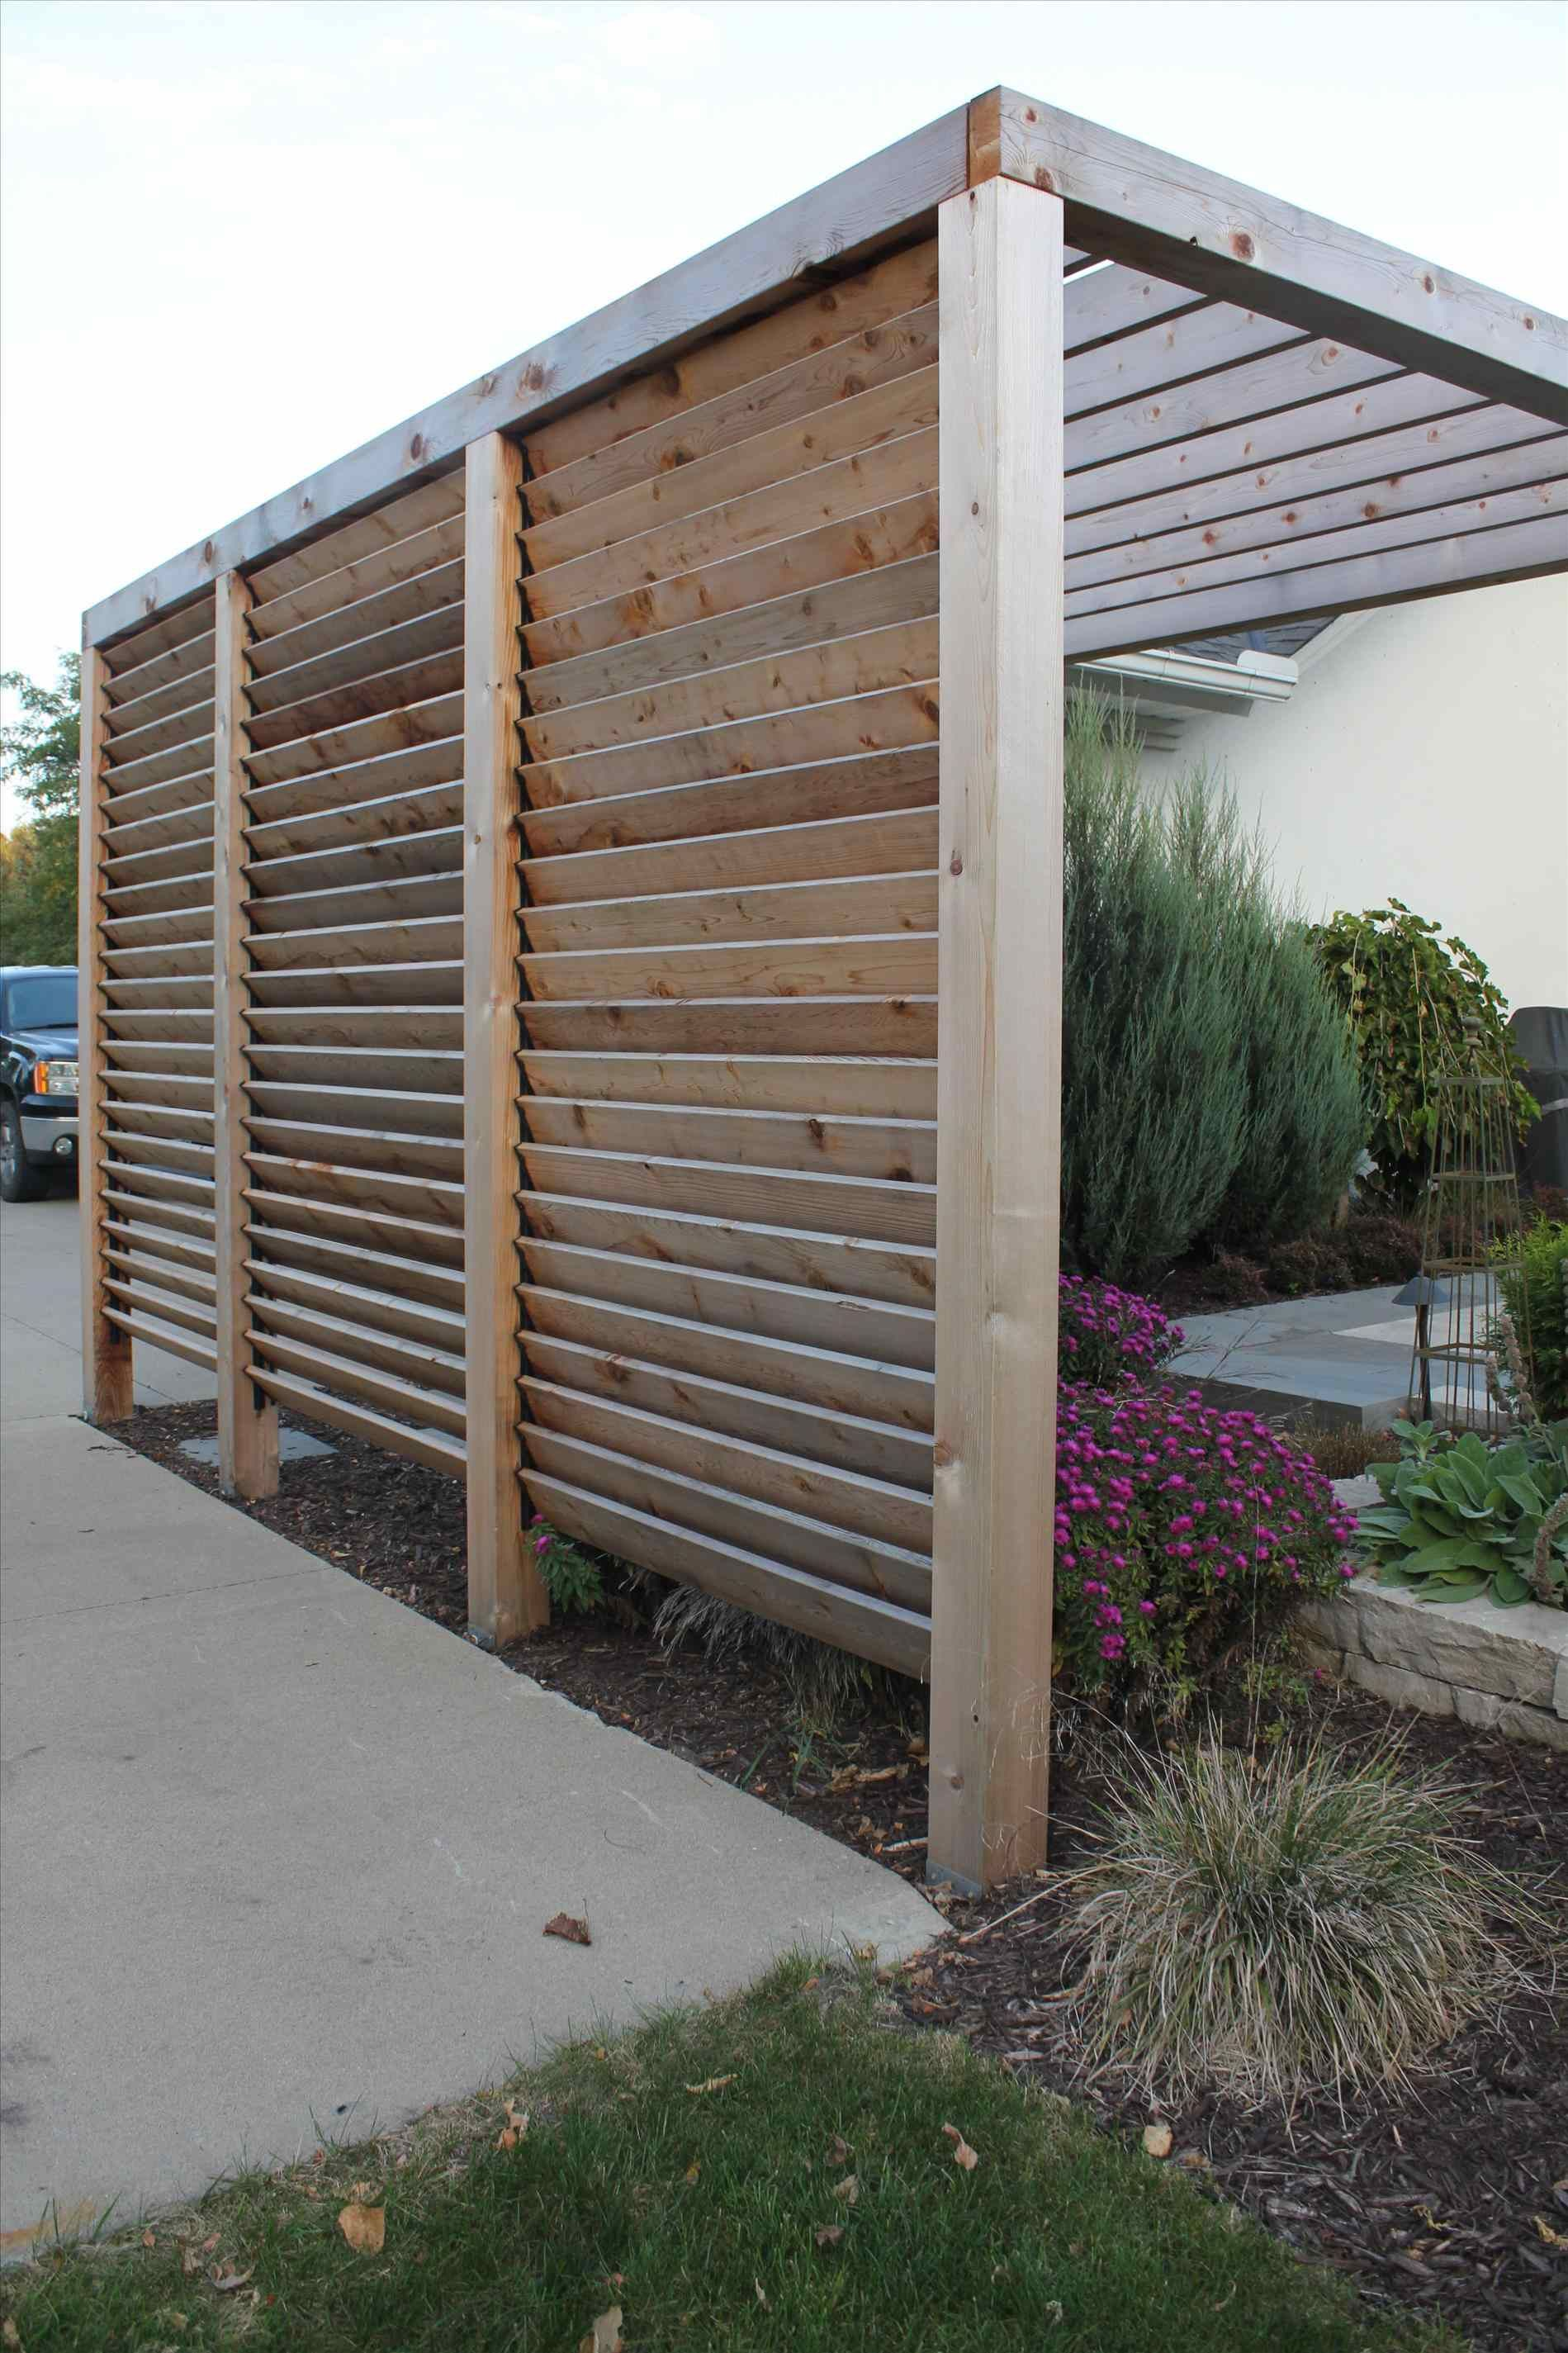 Diy Corrugated Patio Cover: Corrugated Metal Fence Home Design